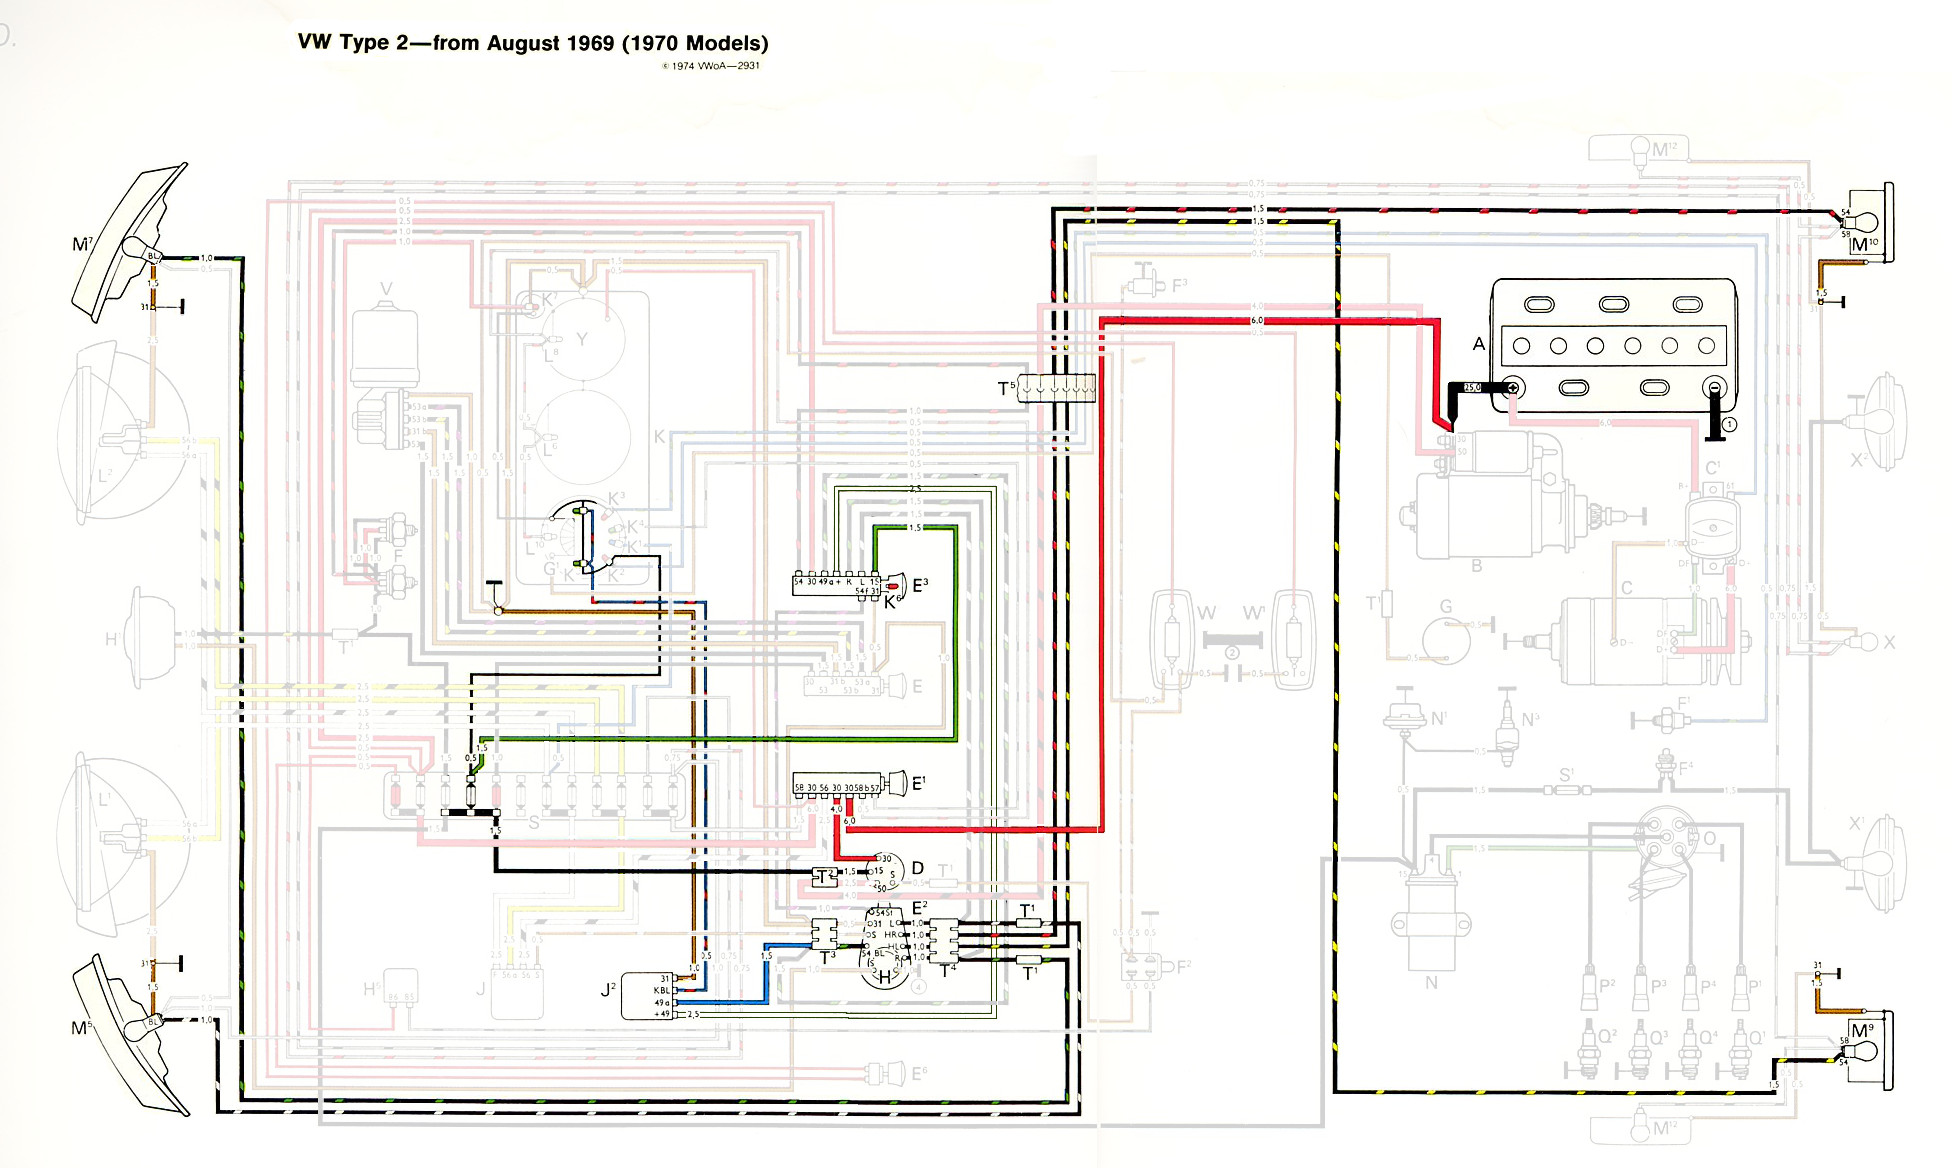 1970 Vw Bus Wiring Diagram | Wiring Diagrams  Vw Bus Wiring Harness on vw wire harness, vw wiring harness diagram, volkswagen beetle wiring harness, off road wiring harness, vw wiring harness kits, pontiac bonneville wiring harness, motorcycle wiring harness, camper wiring harness, vw engine wiring harness, vw bus alternator wiring, dodge challenger wiring harness, vw bus ignition wiring, vw thing wiring harness, porsche wiring harness, kia sportage wiring harness, volkswagen type 3 wiring harness, vw trike wiring harness, vintage vw wiring harness, trailer wiring harness, honda accord wiring harness,